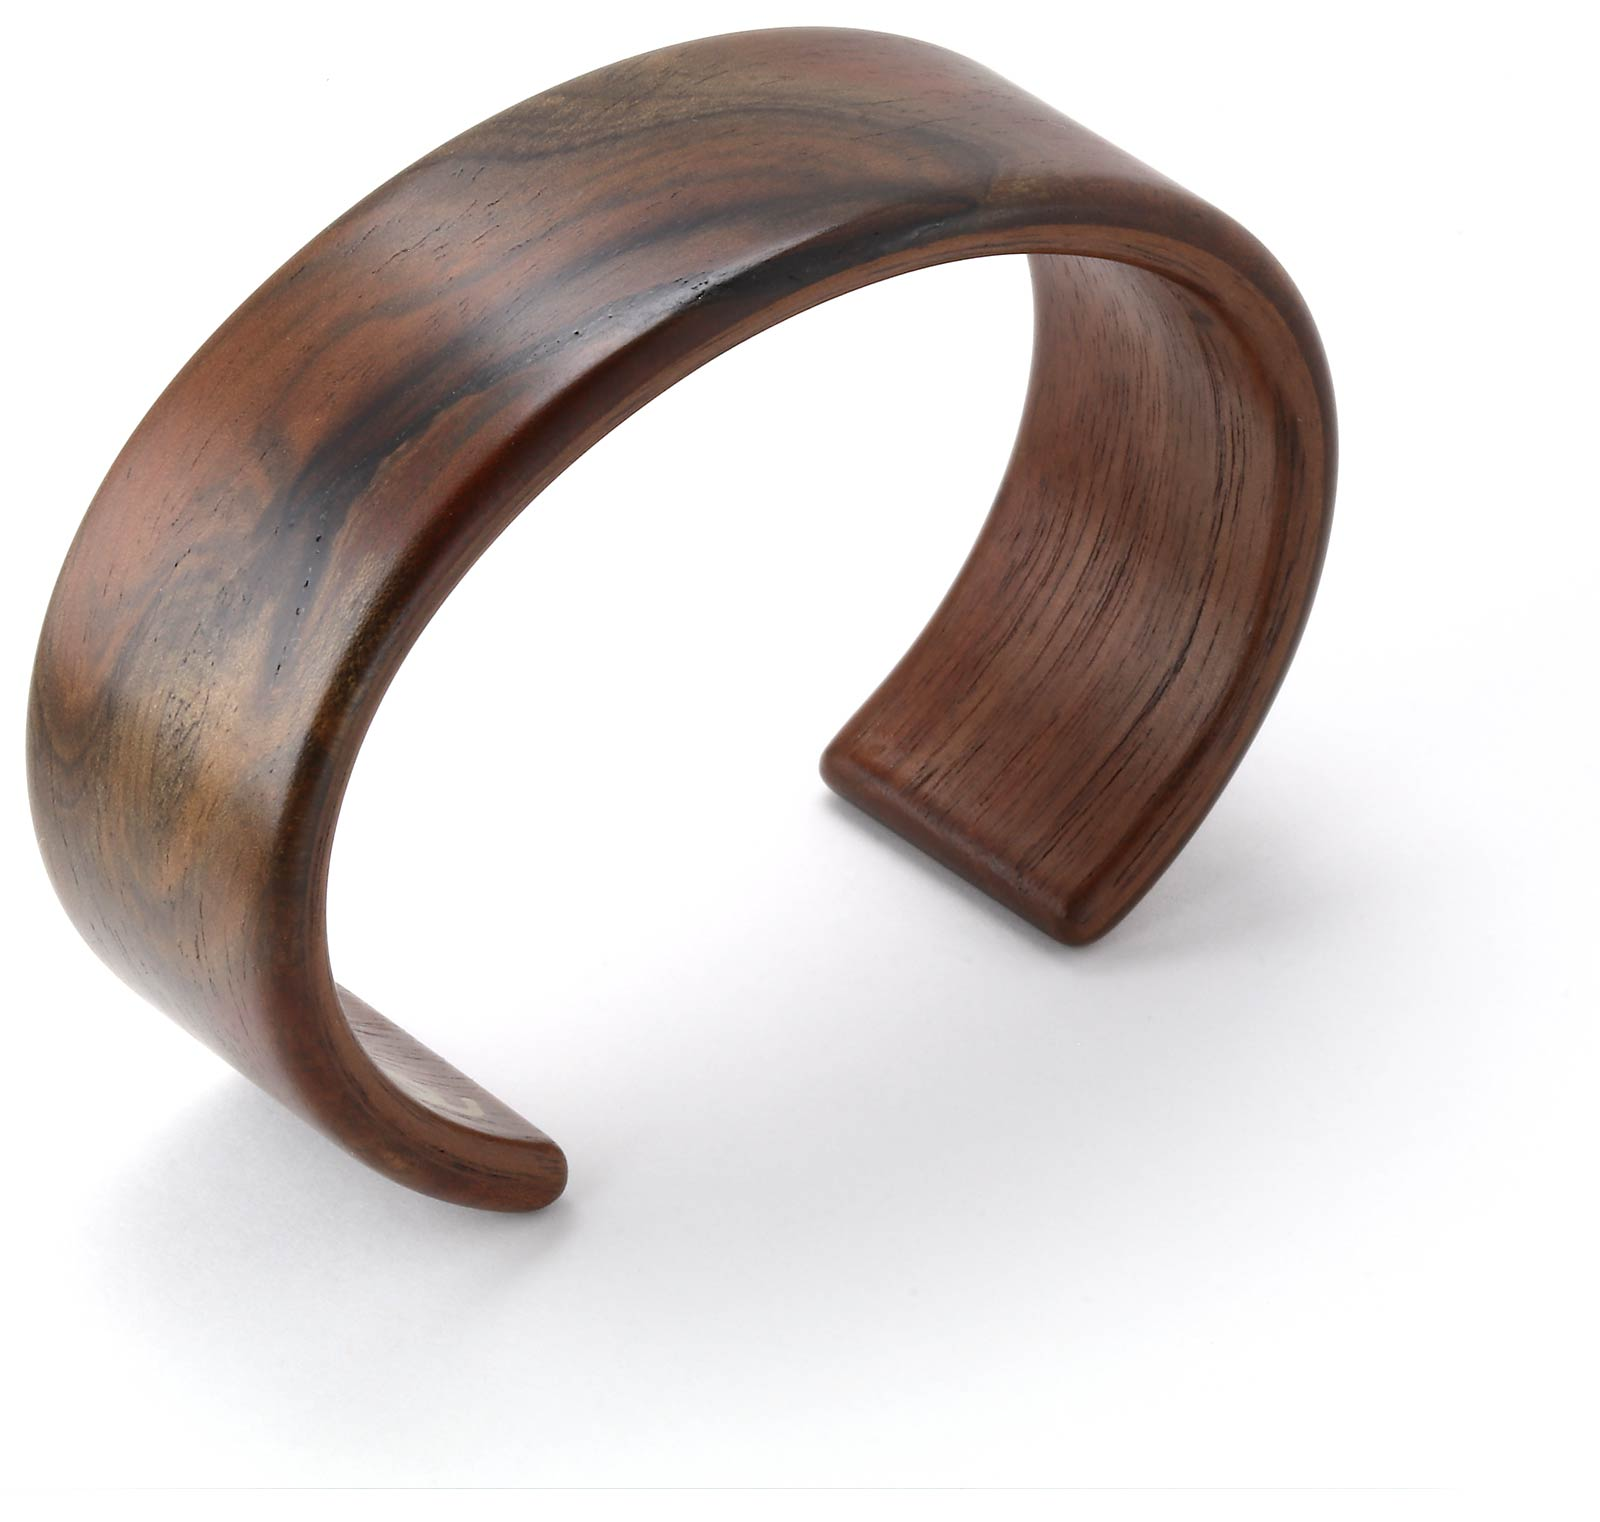 Steam bent walnut burl wood wide cuff bracelet.